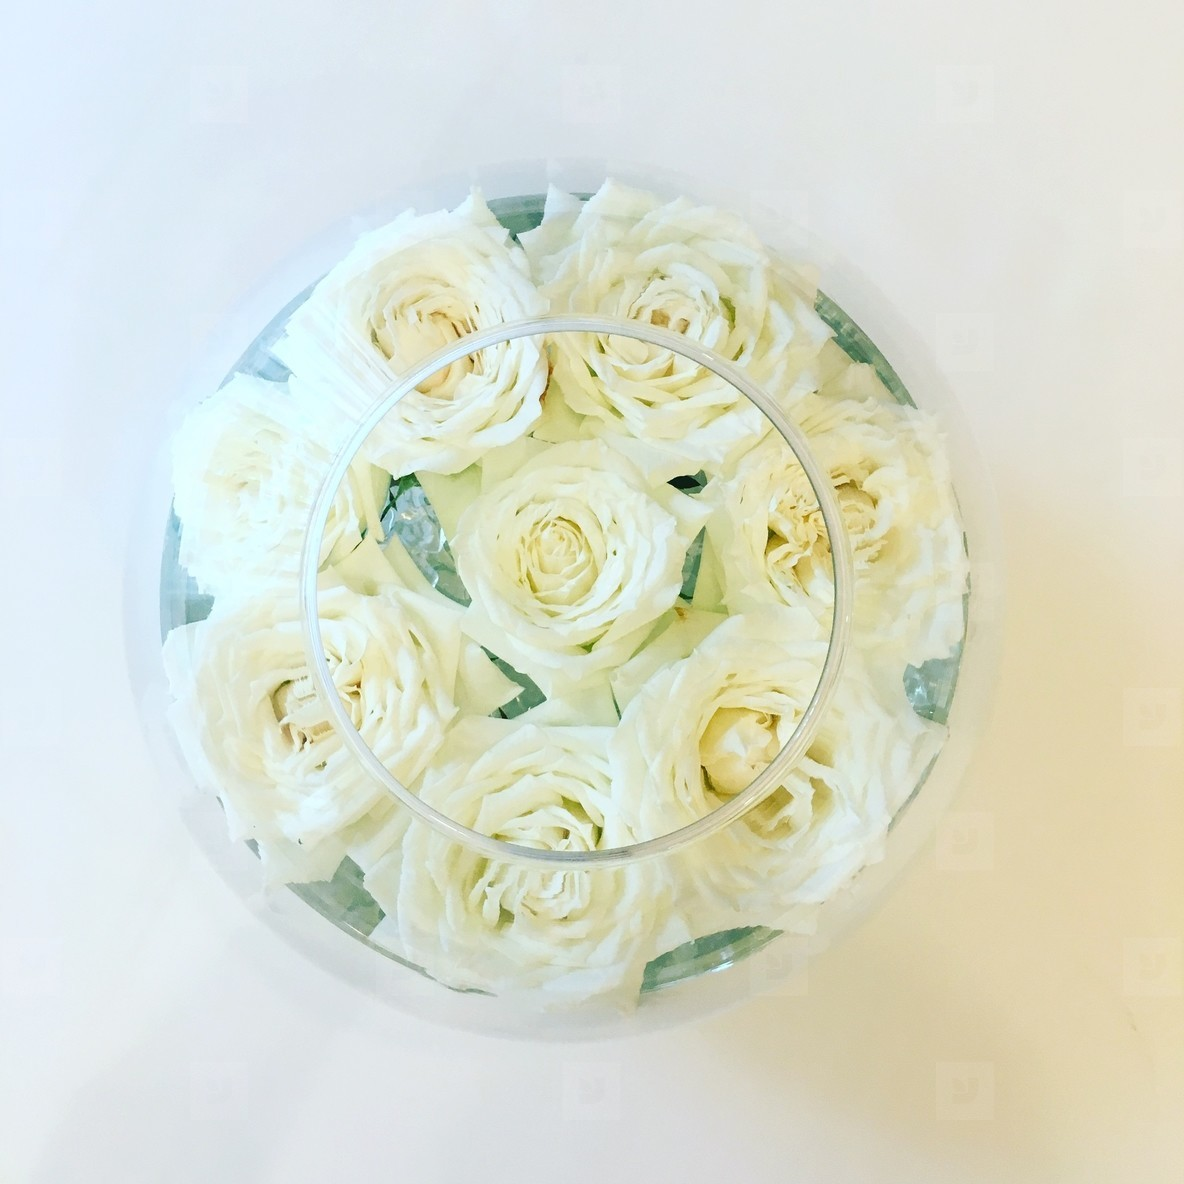 White roses in glass cup